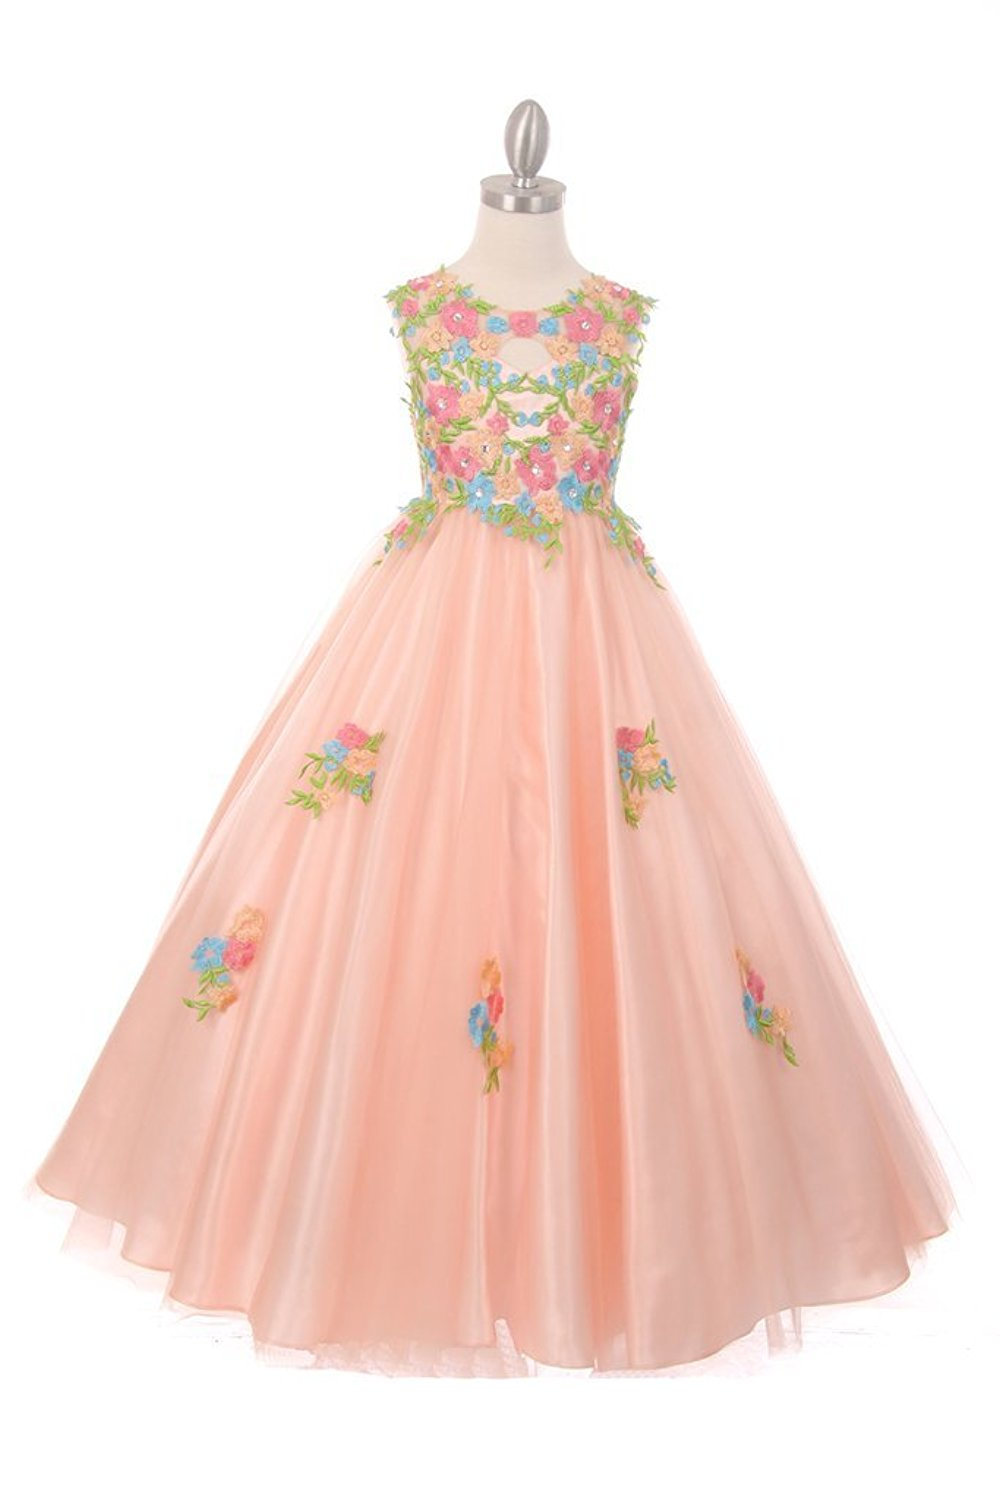 The Couture Dresses Beautiful All Over Hand Placed and Sewn Flower Embroidery Lace Dress, Blush 8